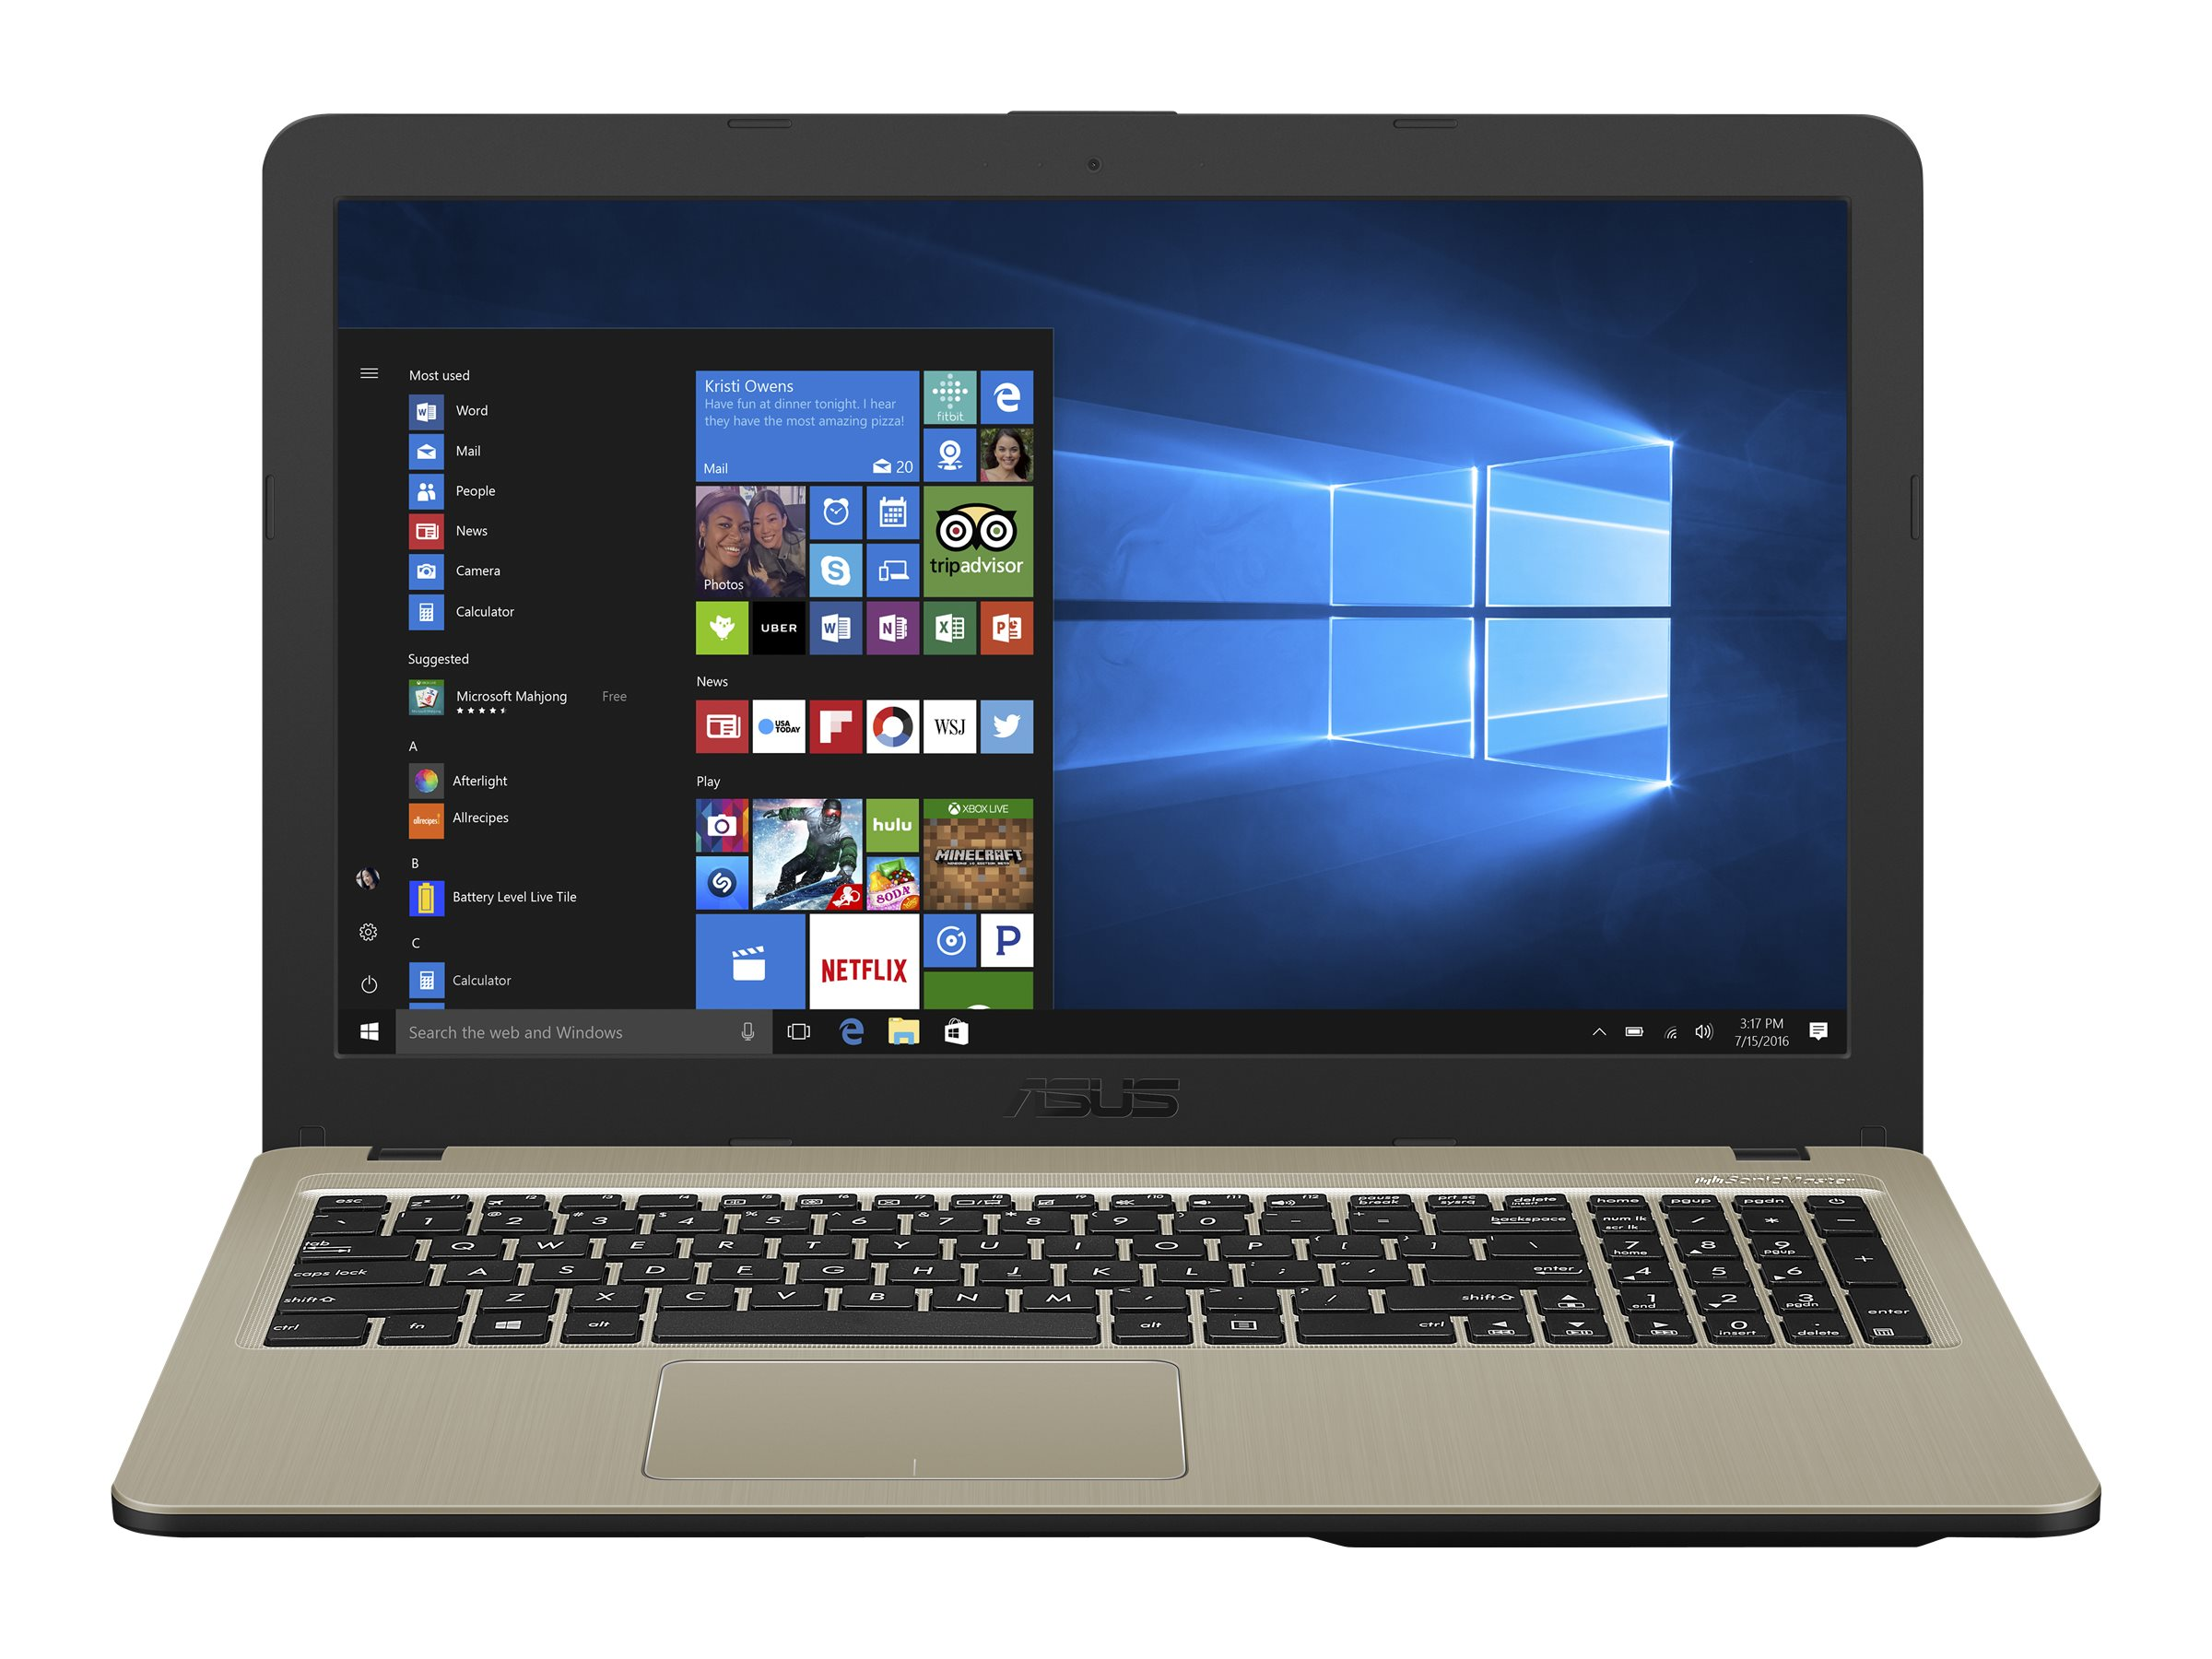 "ASUS VivoBook 15 X540UA-DM437 - 39.6 cm (15.6"") Full HD - Core i5 8250U - 8 GB RAM - 256 GB SSD - Intel UHD Graphics - kein Windows"